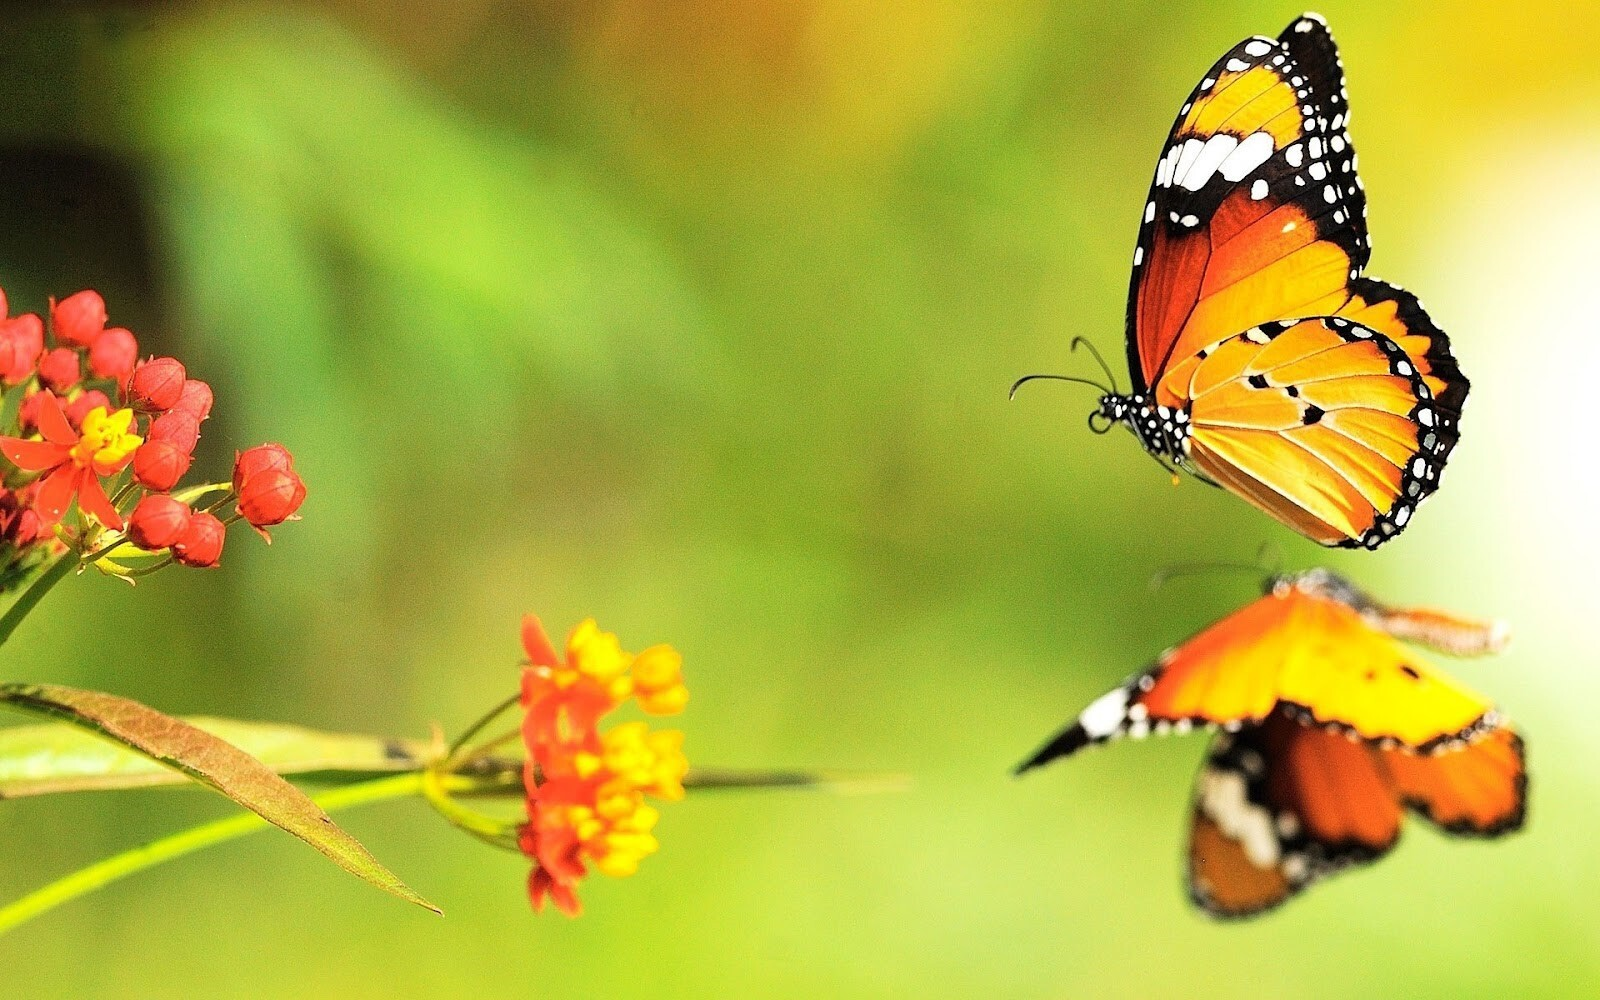 Butterflies Wallpapers Hd Download: Beautiful Butterfly On Water Reflection HD Wallpaper